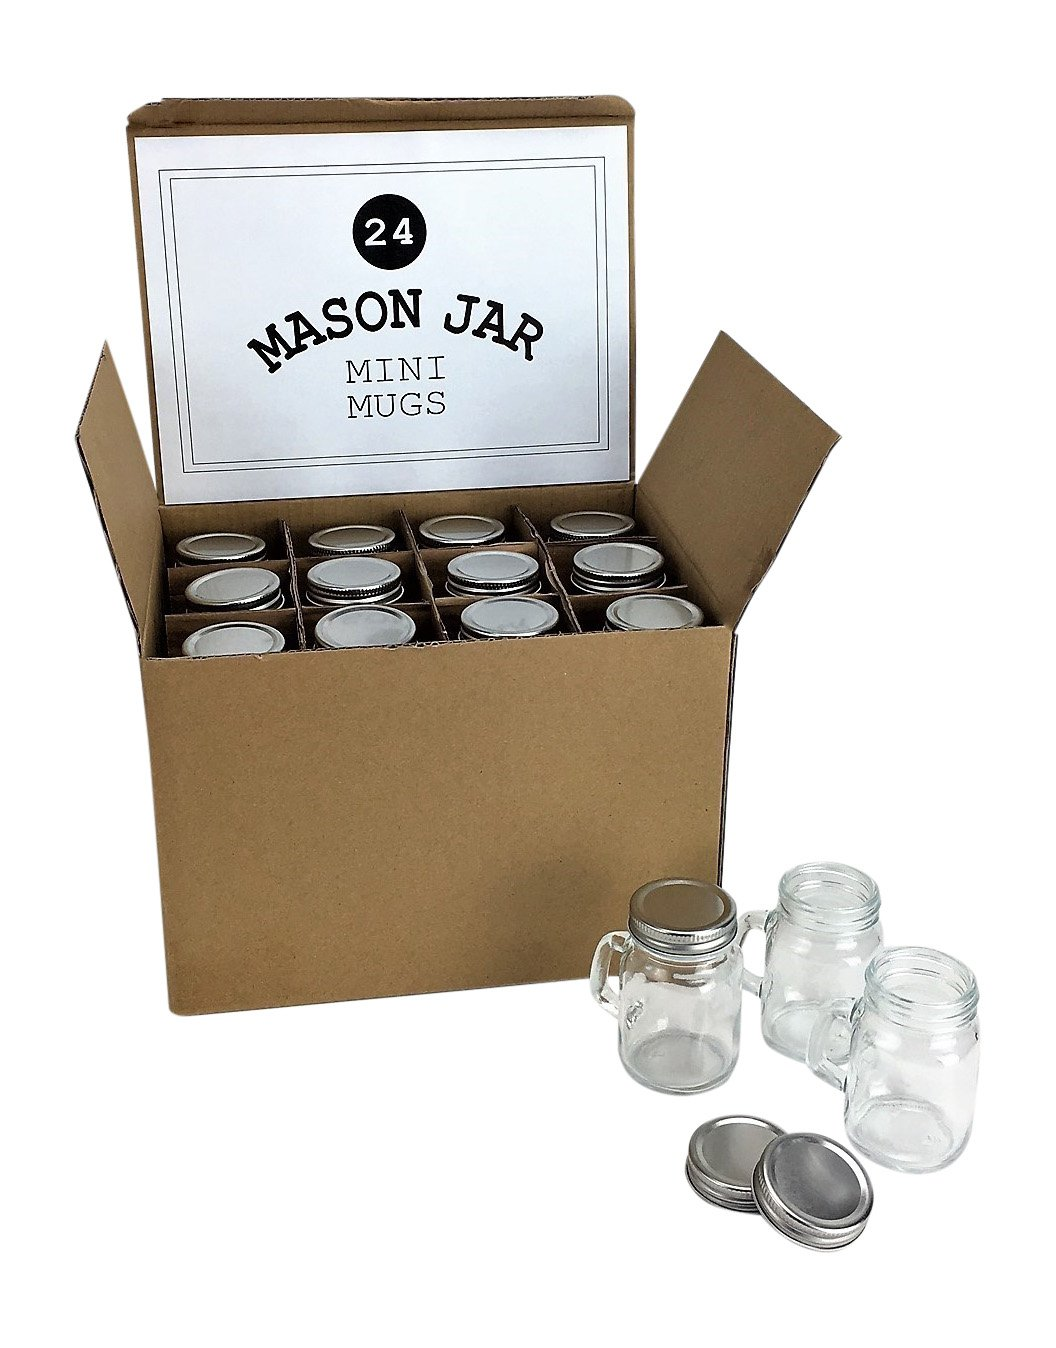 Mason Jar 4 Ounce Mugs - Set of 24 Glasses With Handles And Leak-Proof Lids - Great For Gifts, Drinks, Favors, Candles And Crafts